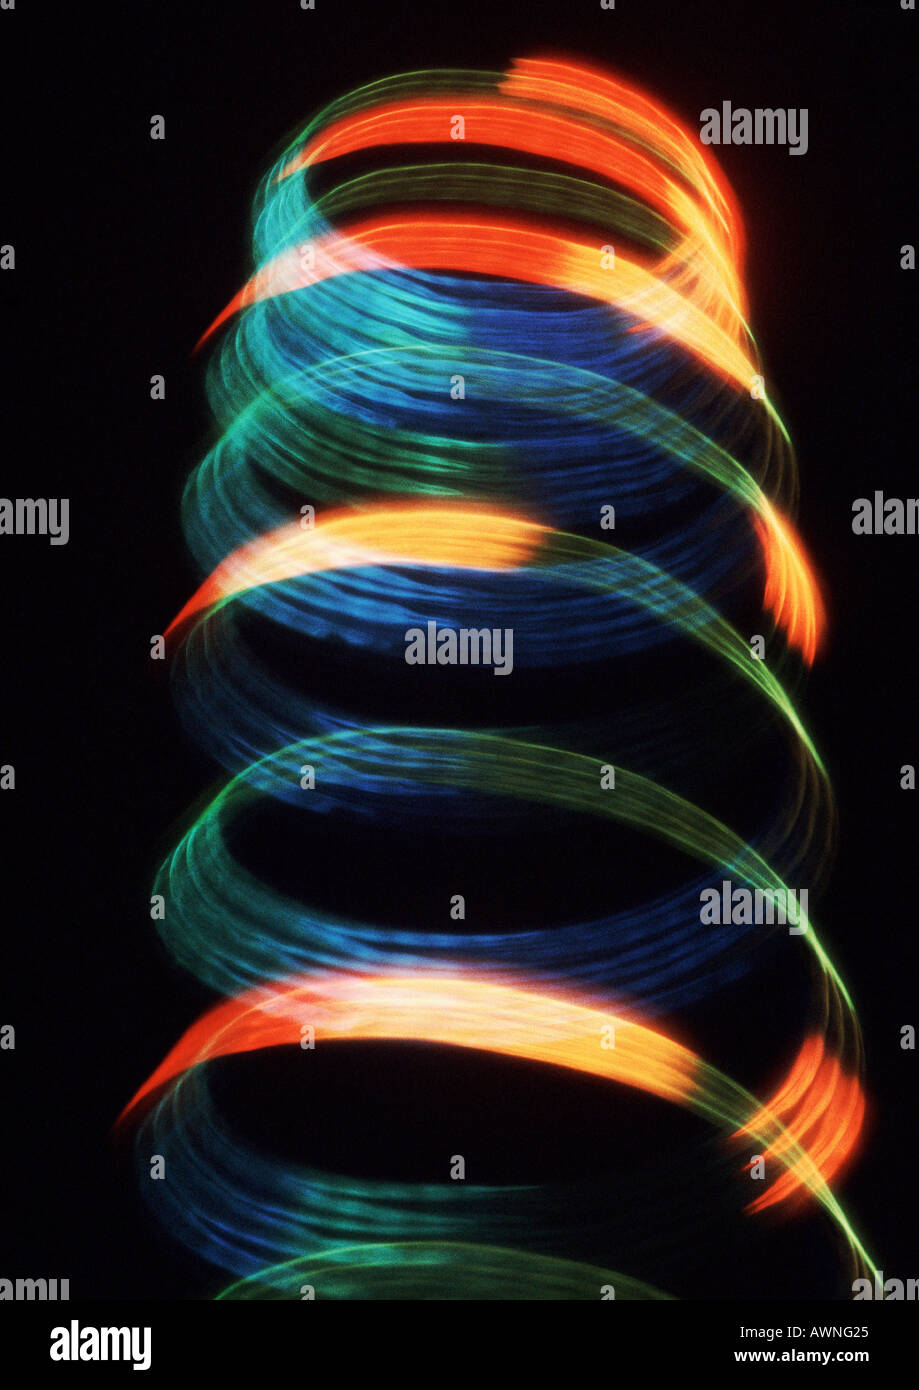 Spiraling light effect, reds, blues and yellows. - Stock Image